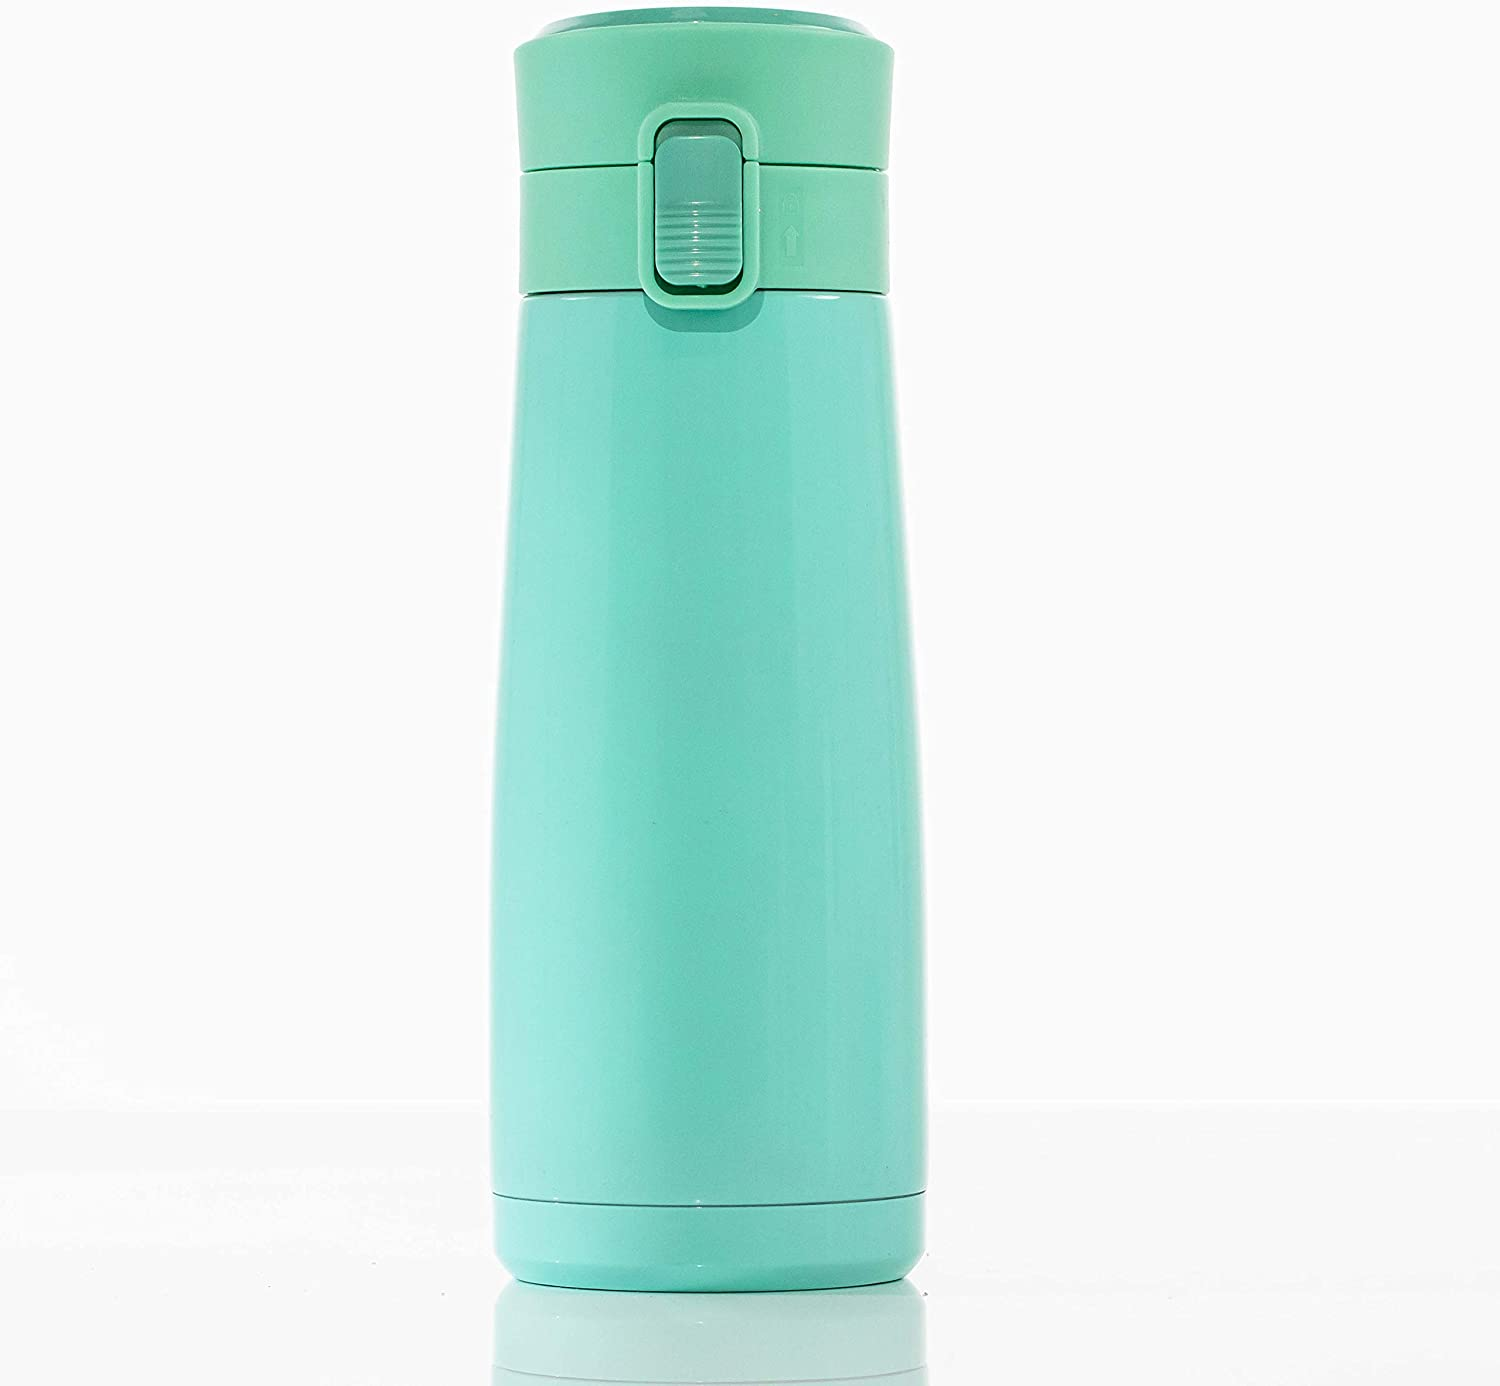 LOCK & LOCK Ceramic Lined Stainless Steel Bottle Double Wall Vacuum Insulated BPA-Free Non Toxic Travel Mug for Cold Drinks and Hot Beverages, 15 ounces, Green